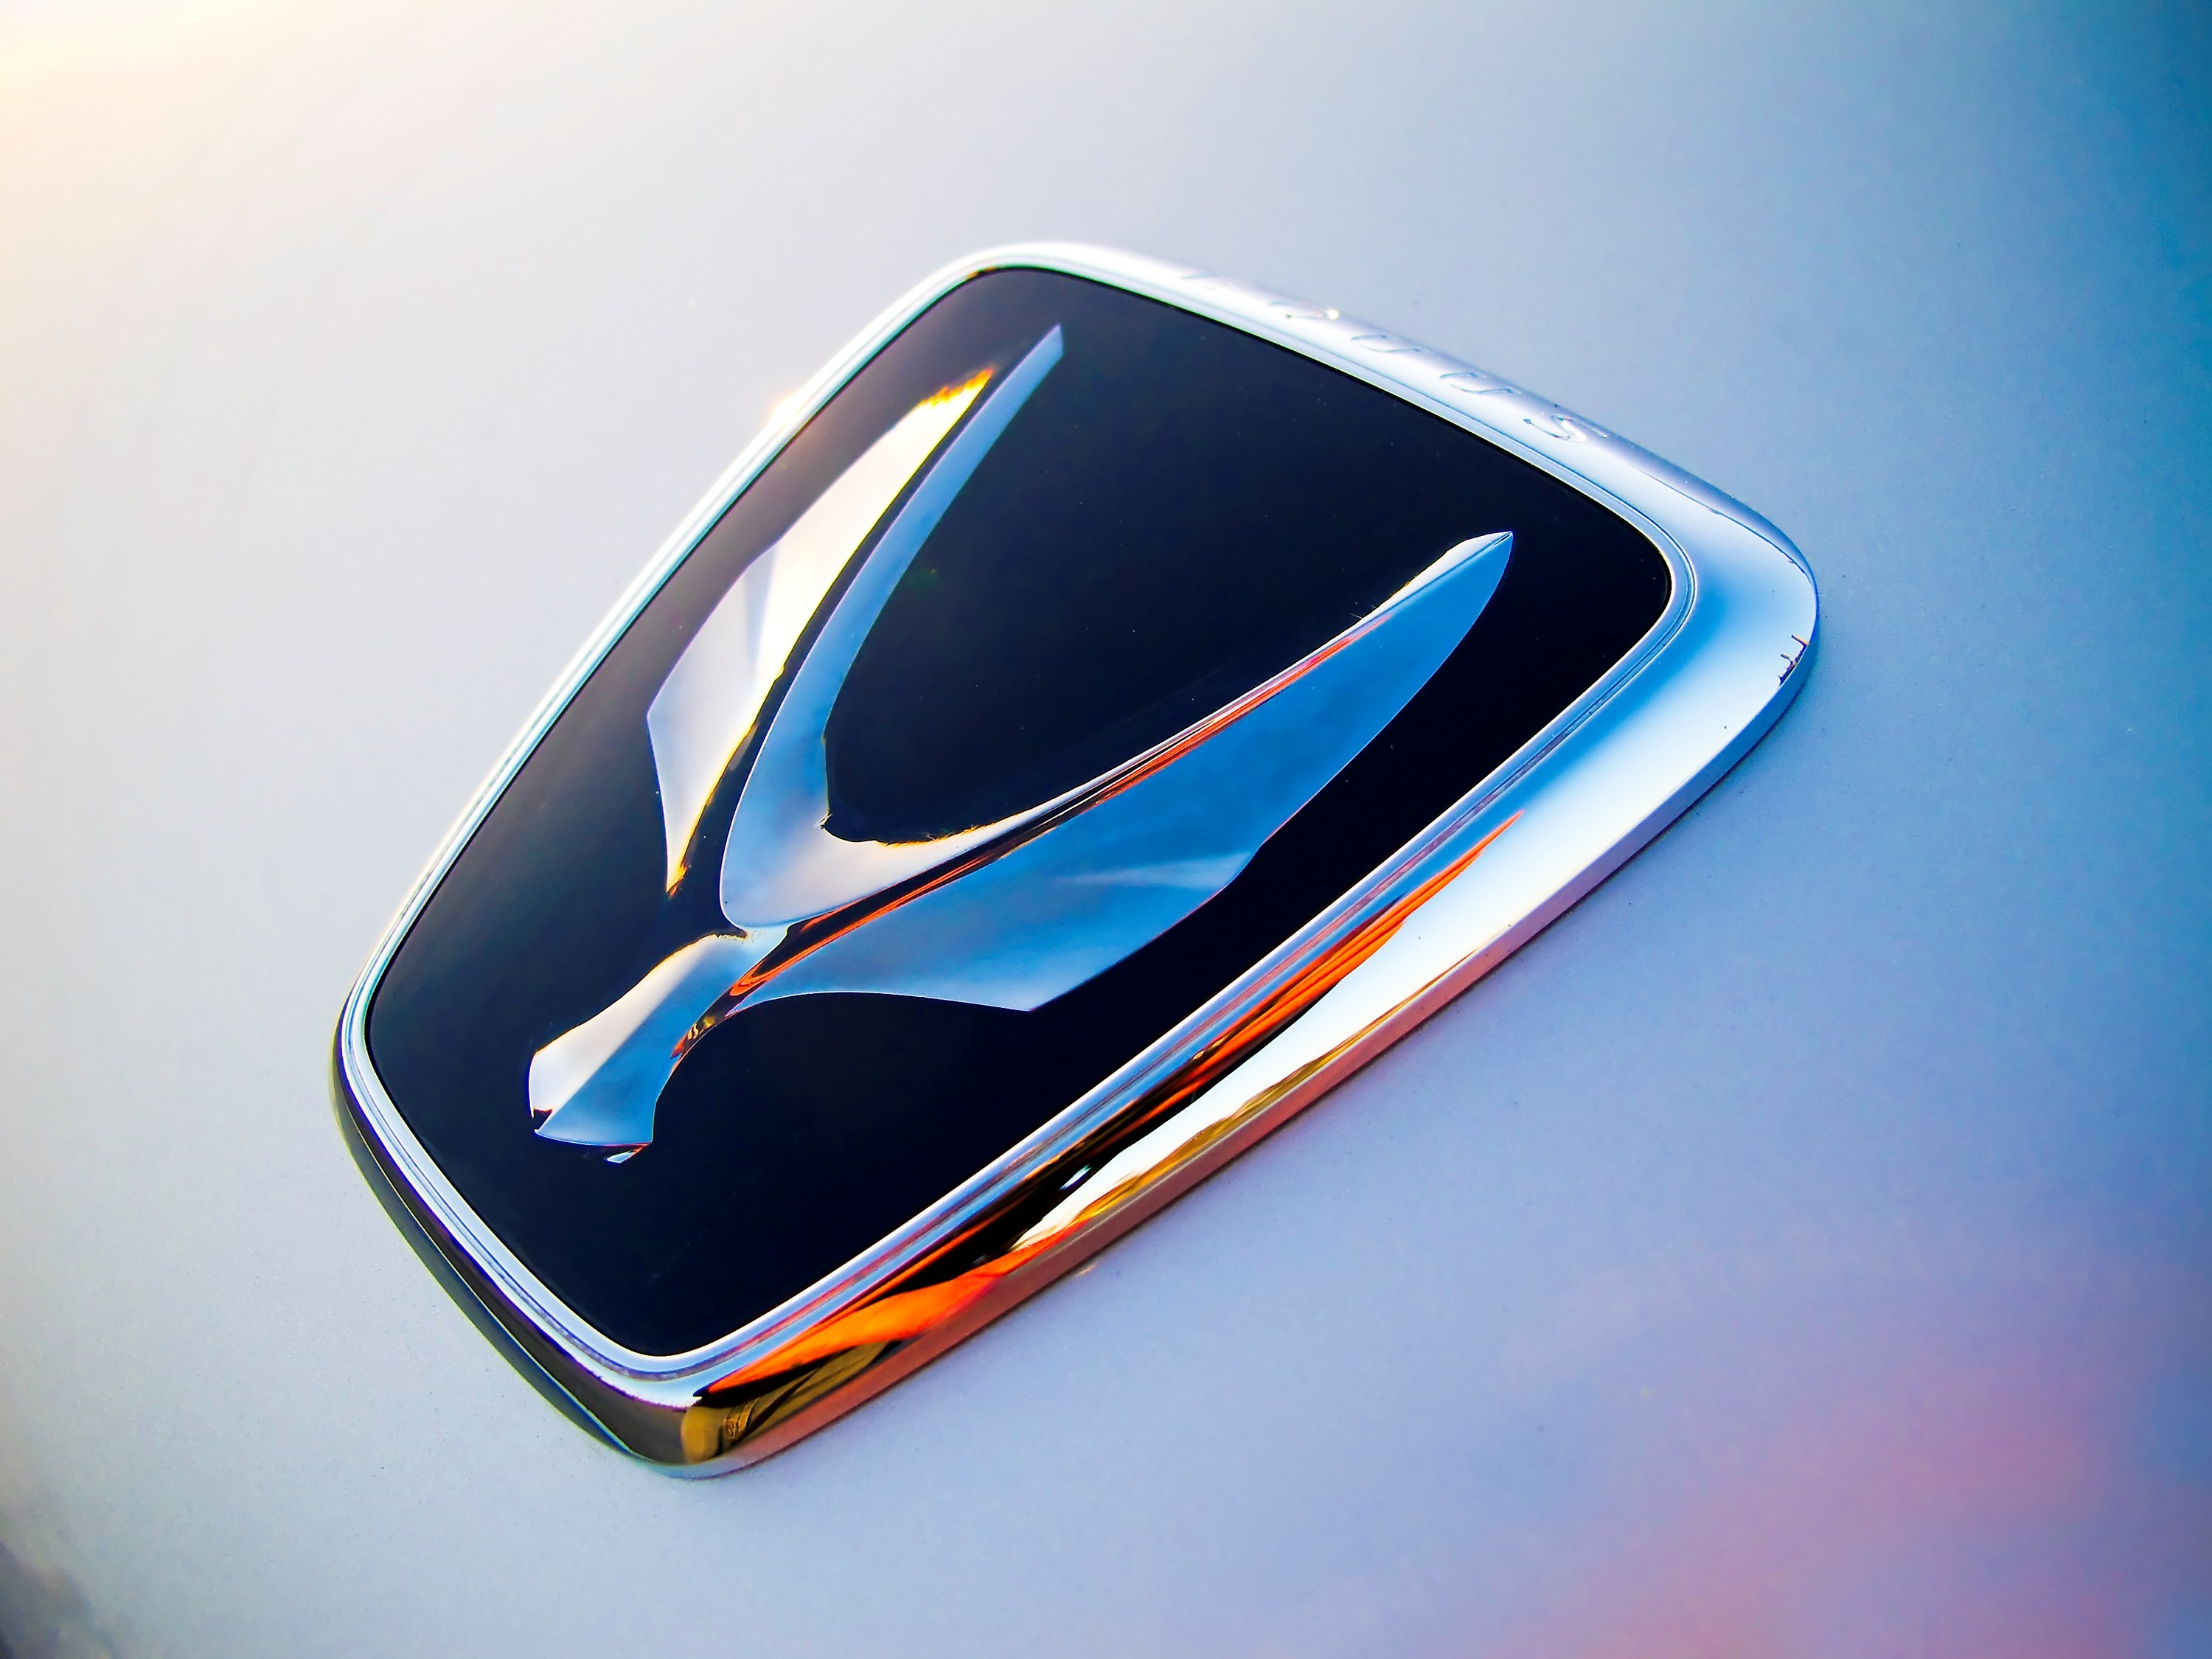 Behind the badge the forgotten hyundai equus logo its deceptive behind the badge the forgotten hyundai equus logo its deceptive design the news wheel biocorpaavc Choice Image